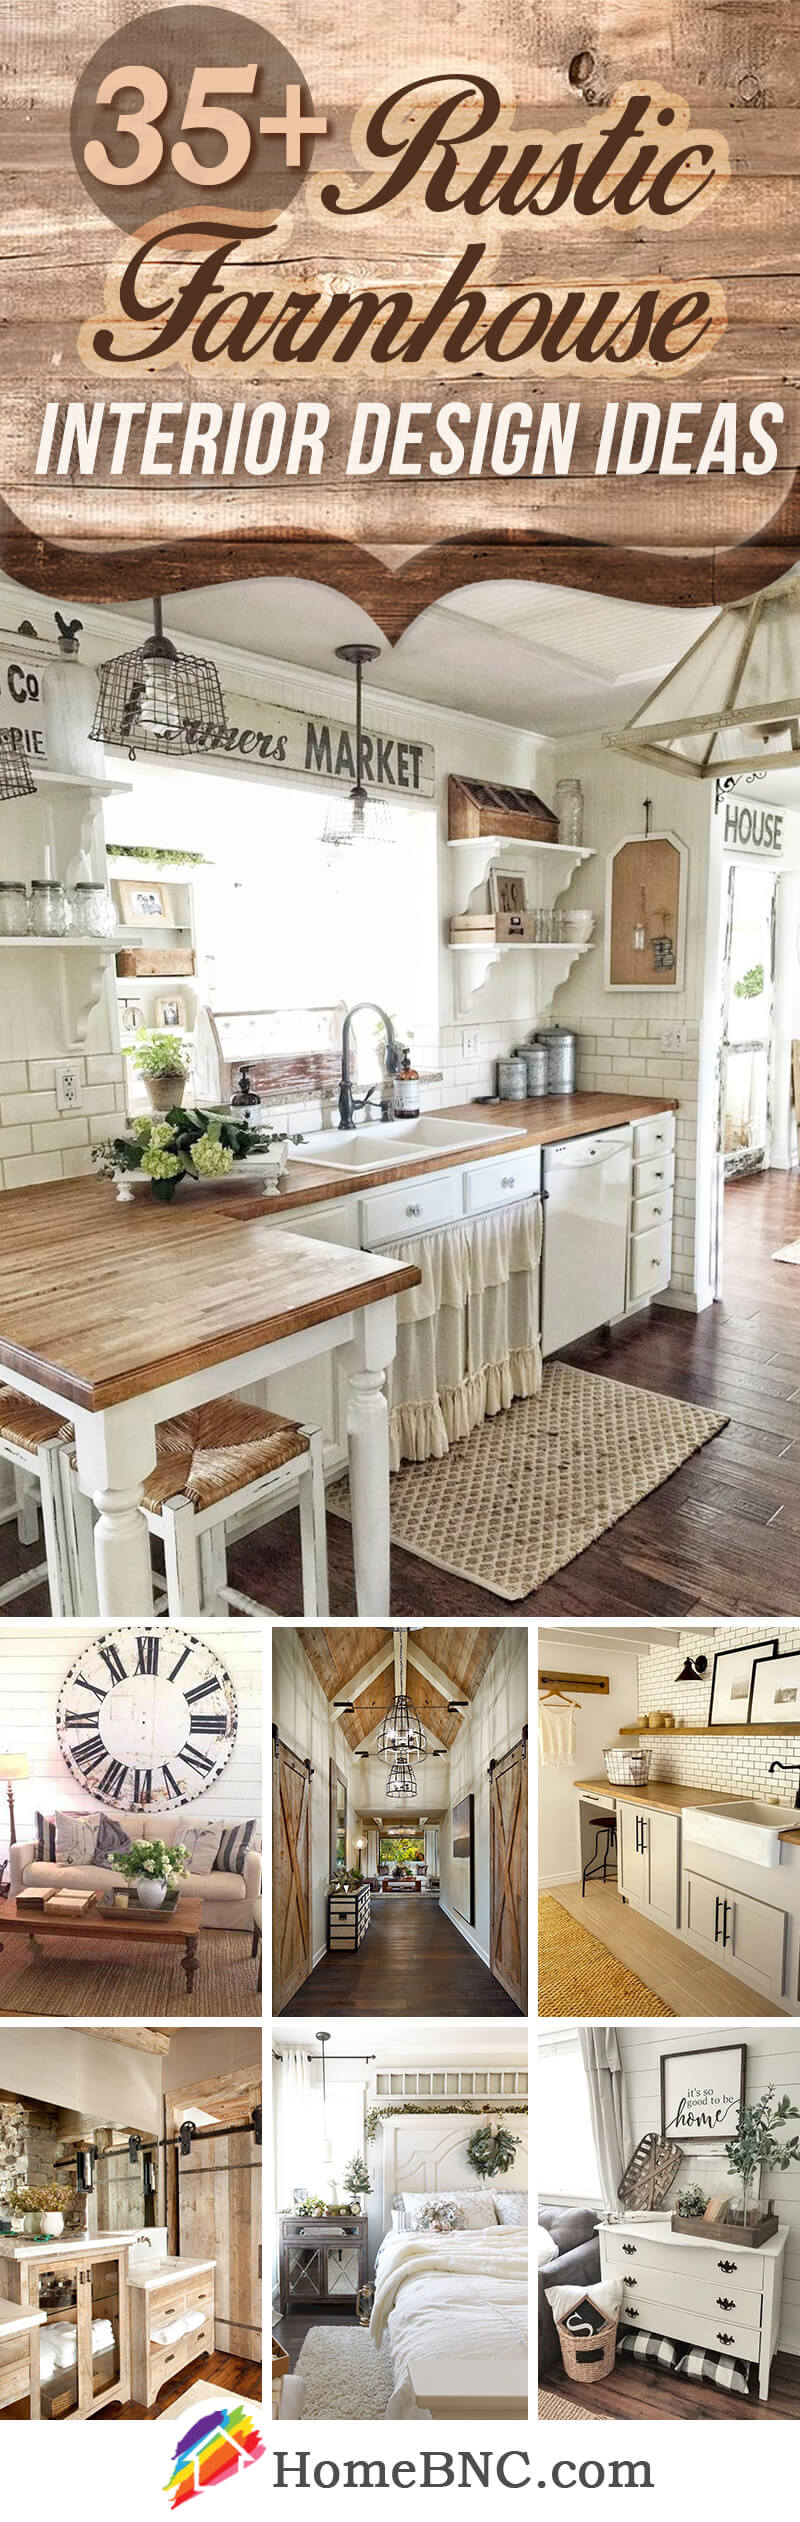 Cottage style designs can look great